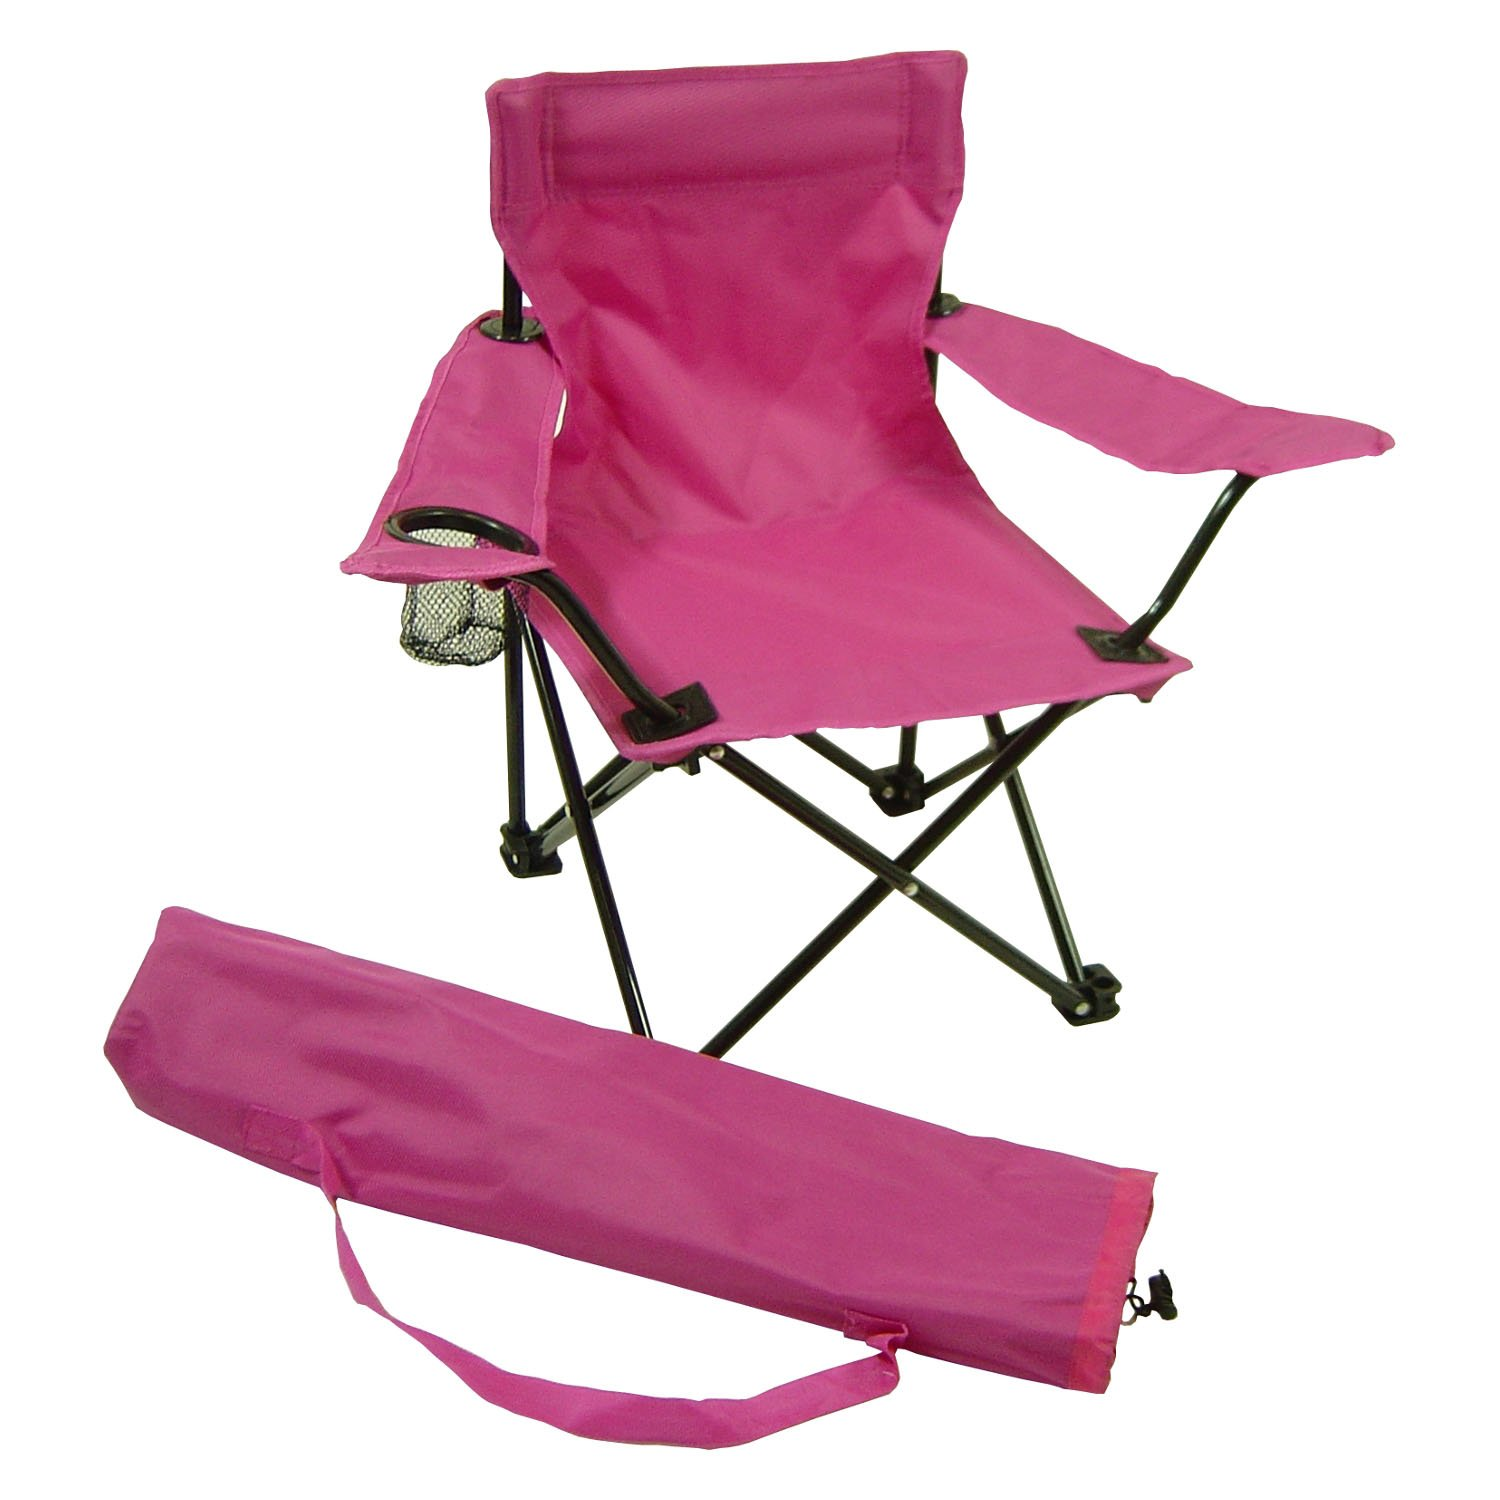 Redmon For Kids Kids Folding C& Chair Hot Pink  sc 1 st  Amazon.com & Best beach chairs for toddler | Amazon.com